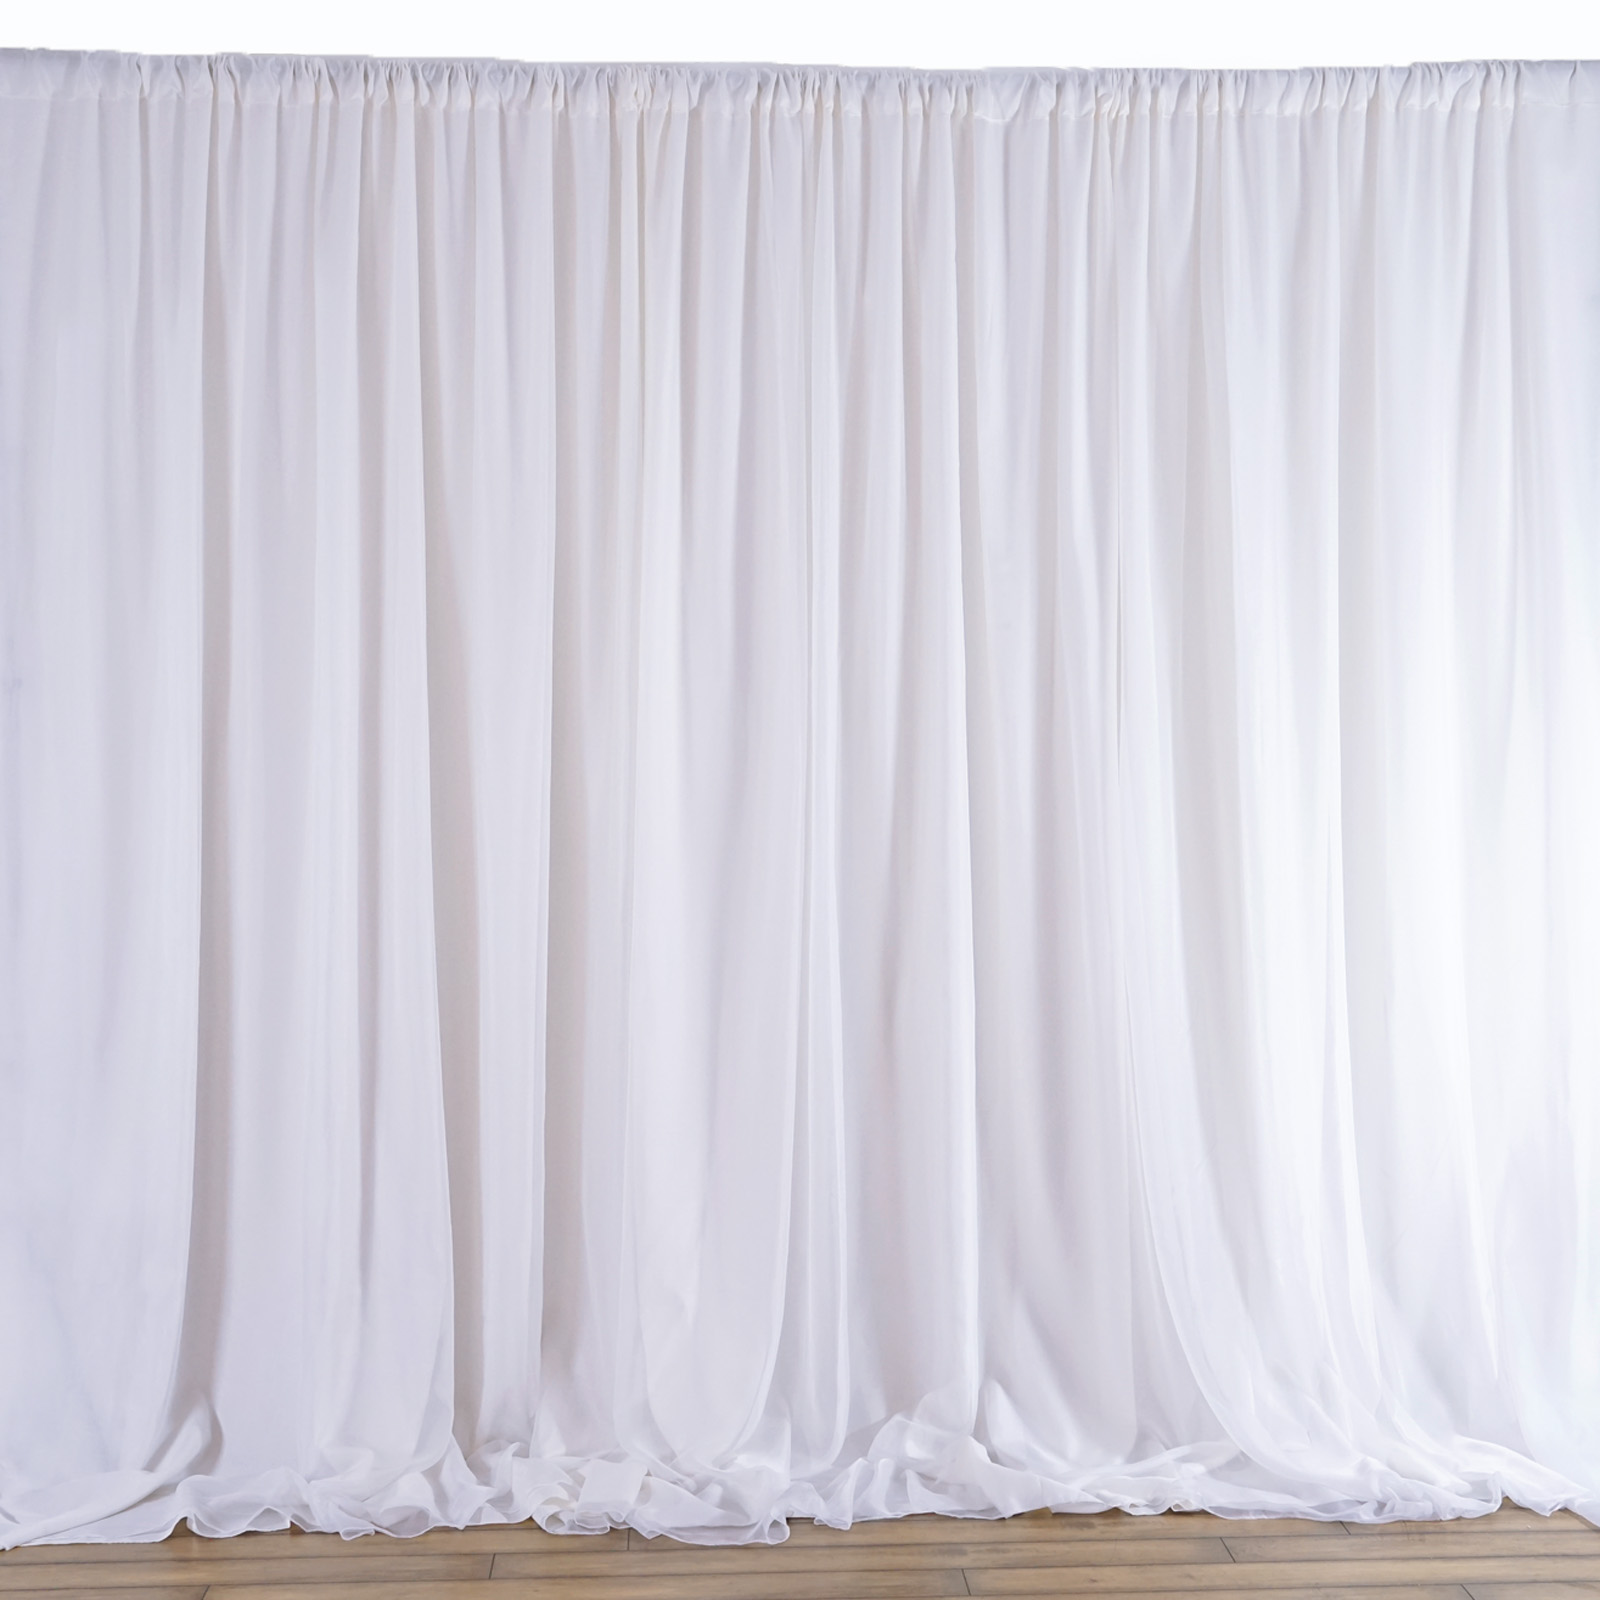 balsacircle 20 ft x 10 ft fabric backdrop curtain wedding party photobooth ceremony event photo decorations walmart com